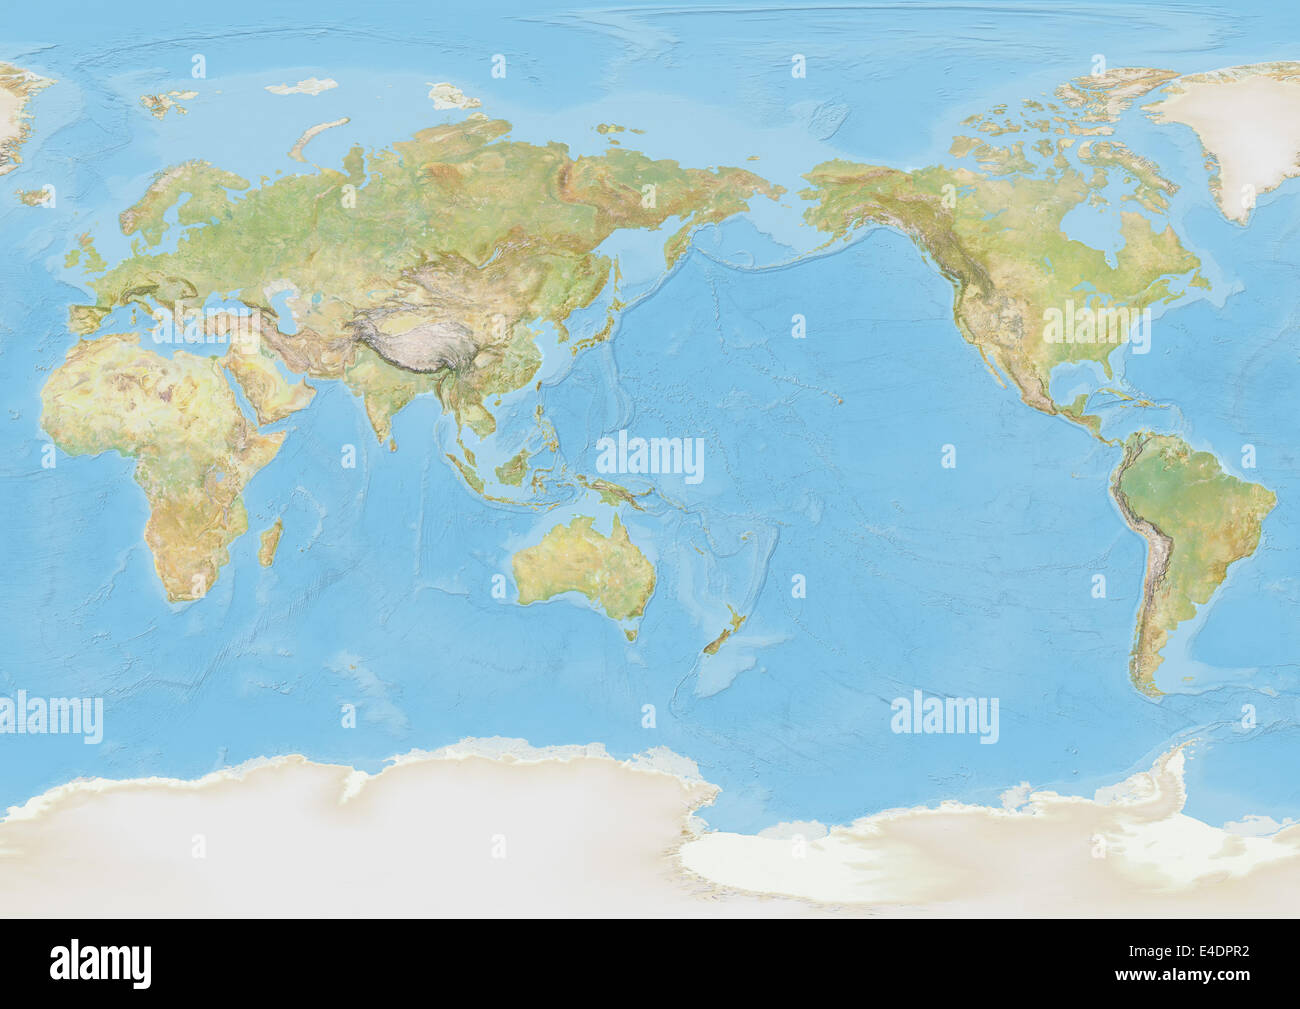 Pacific ocean map stock photos pacific ocean map stock images alamy world map centred on pacific ocean stock image gumiabroncs Images